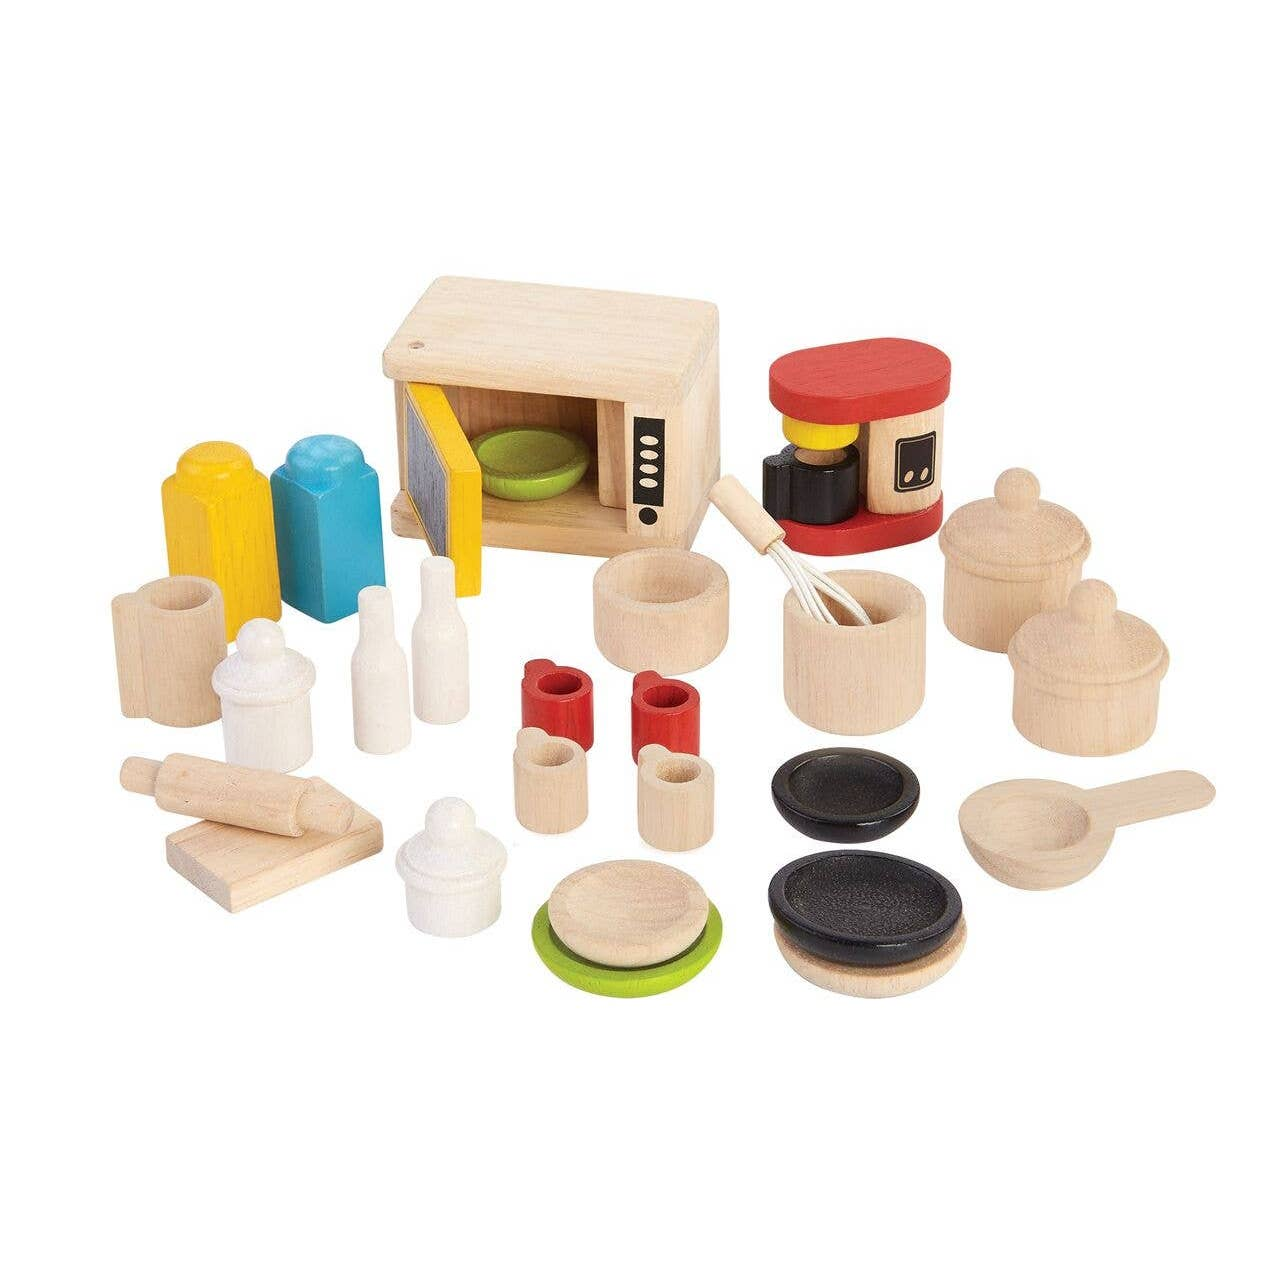 Accessory Kit for Kitchen and Table Play